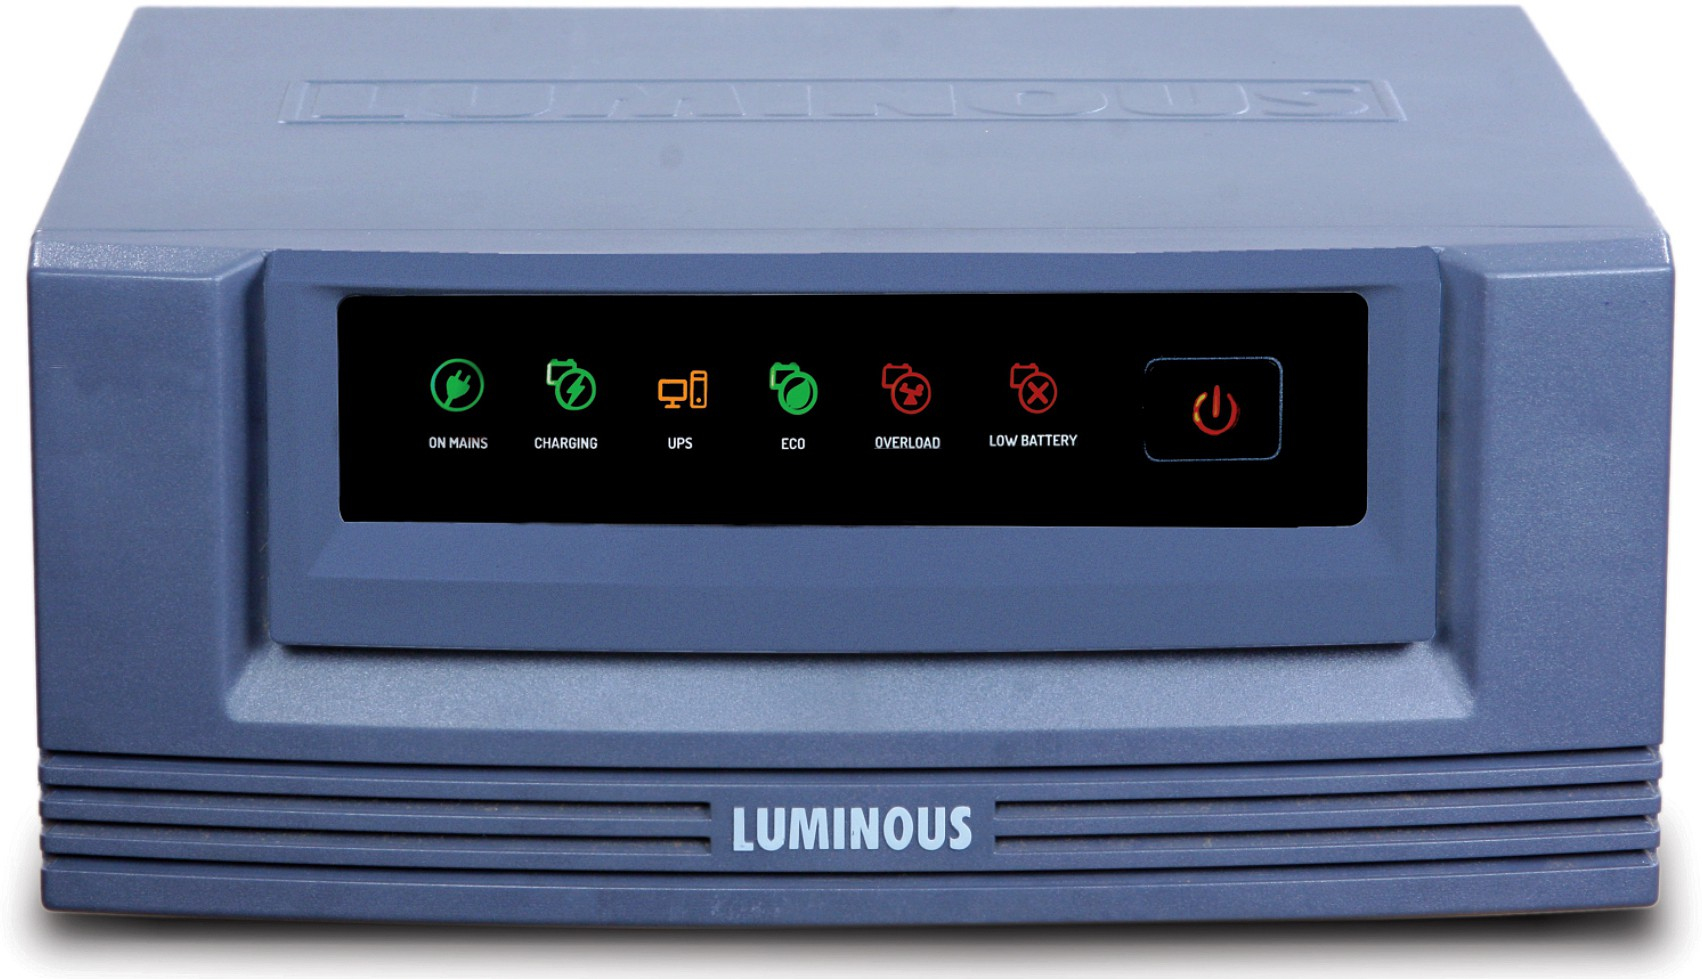 Luminous Ecowatt 1650 Square Wave Inverter Image